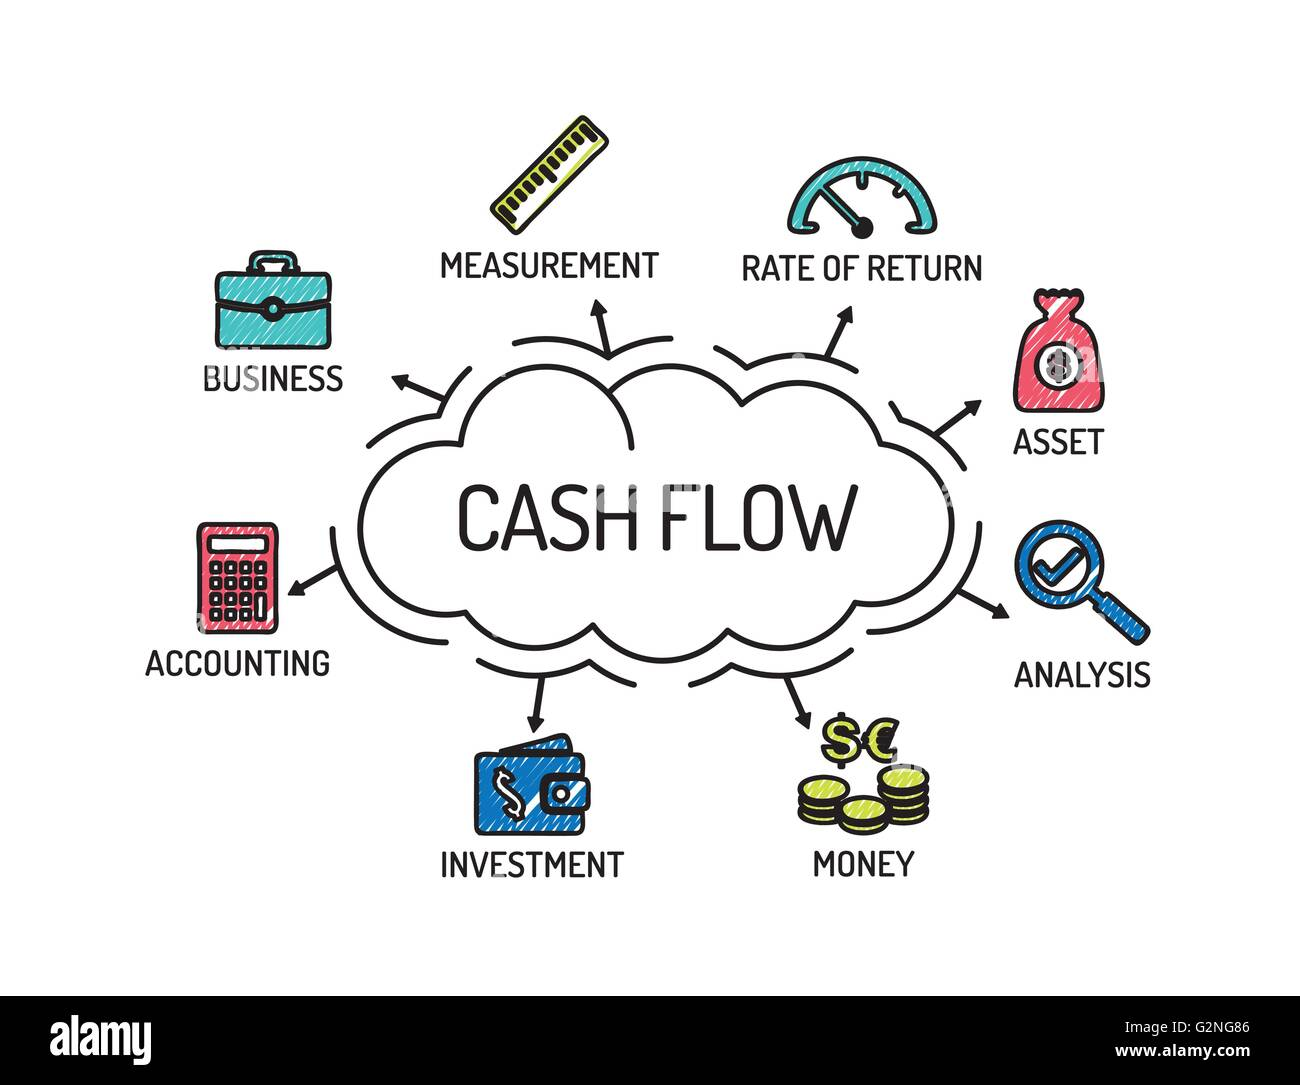 hight resolution of cash flow chart with keywords and icons sketch